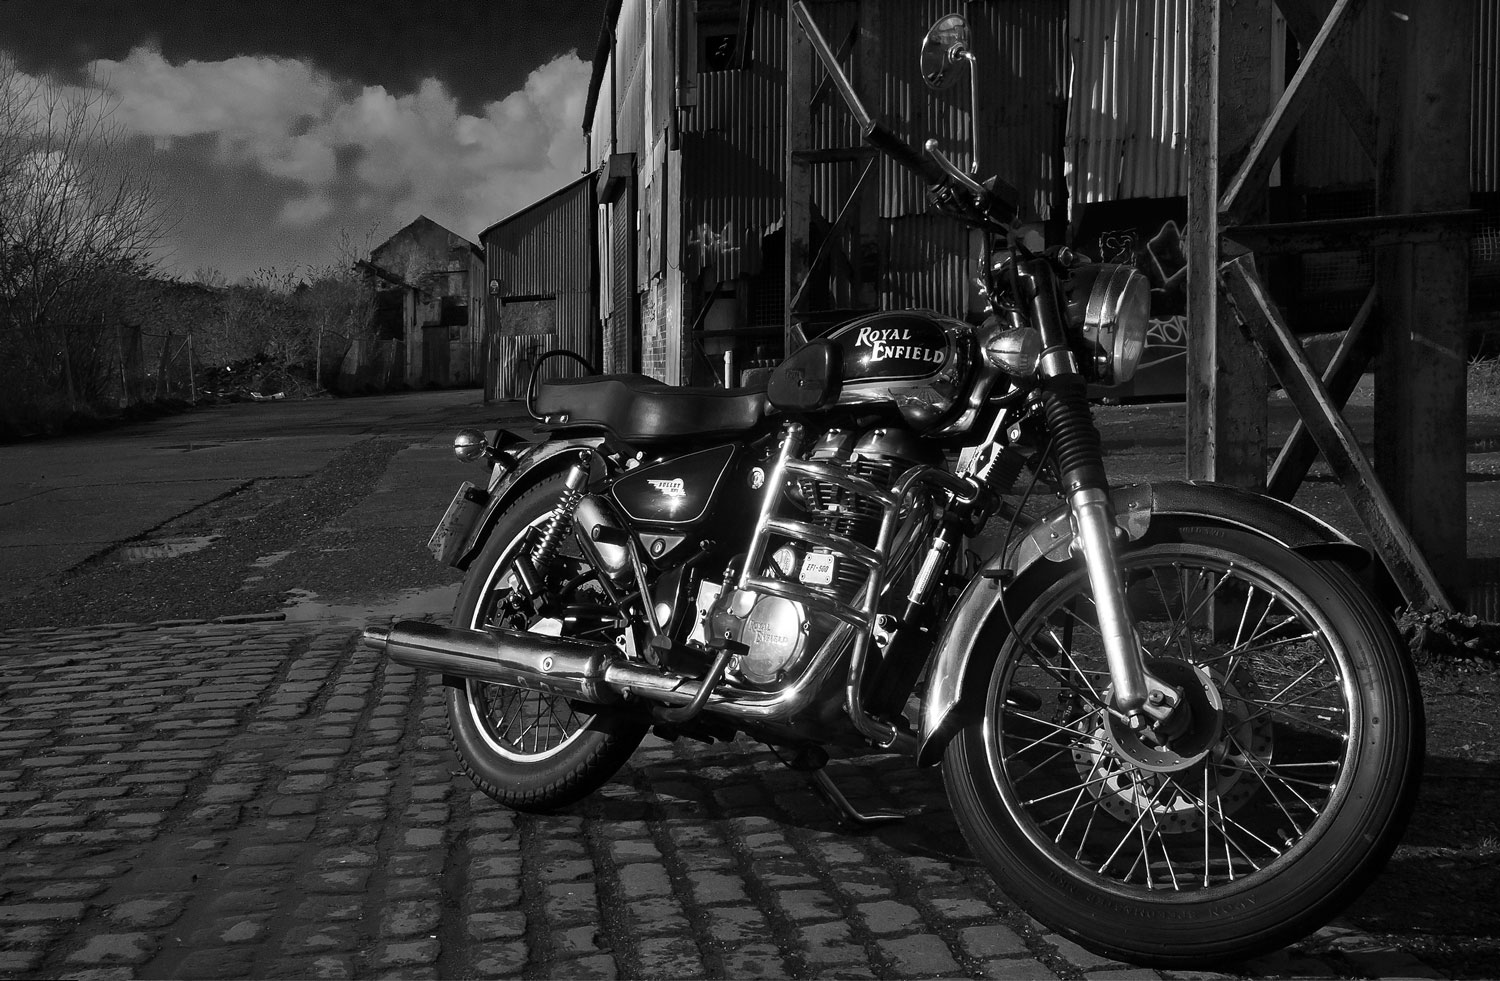 Download Royal Enfield Images Wallpapers Gallery